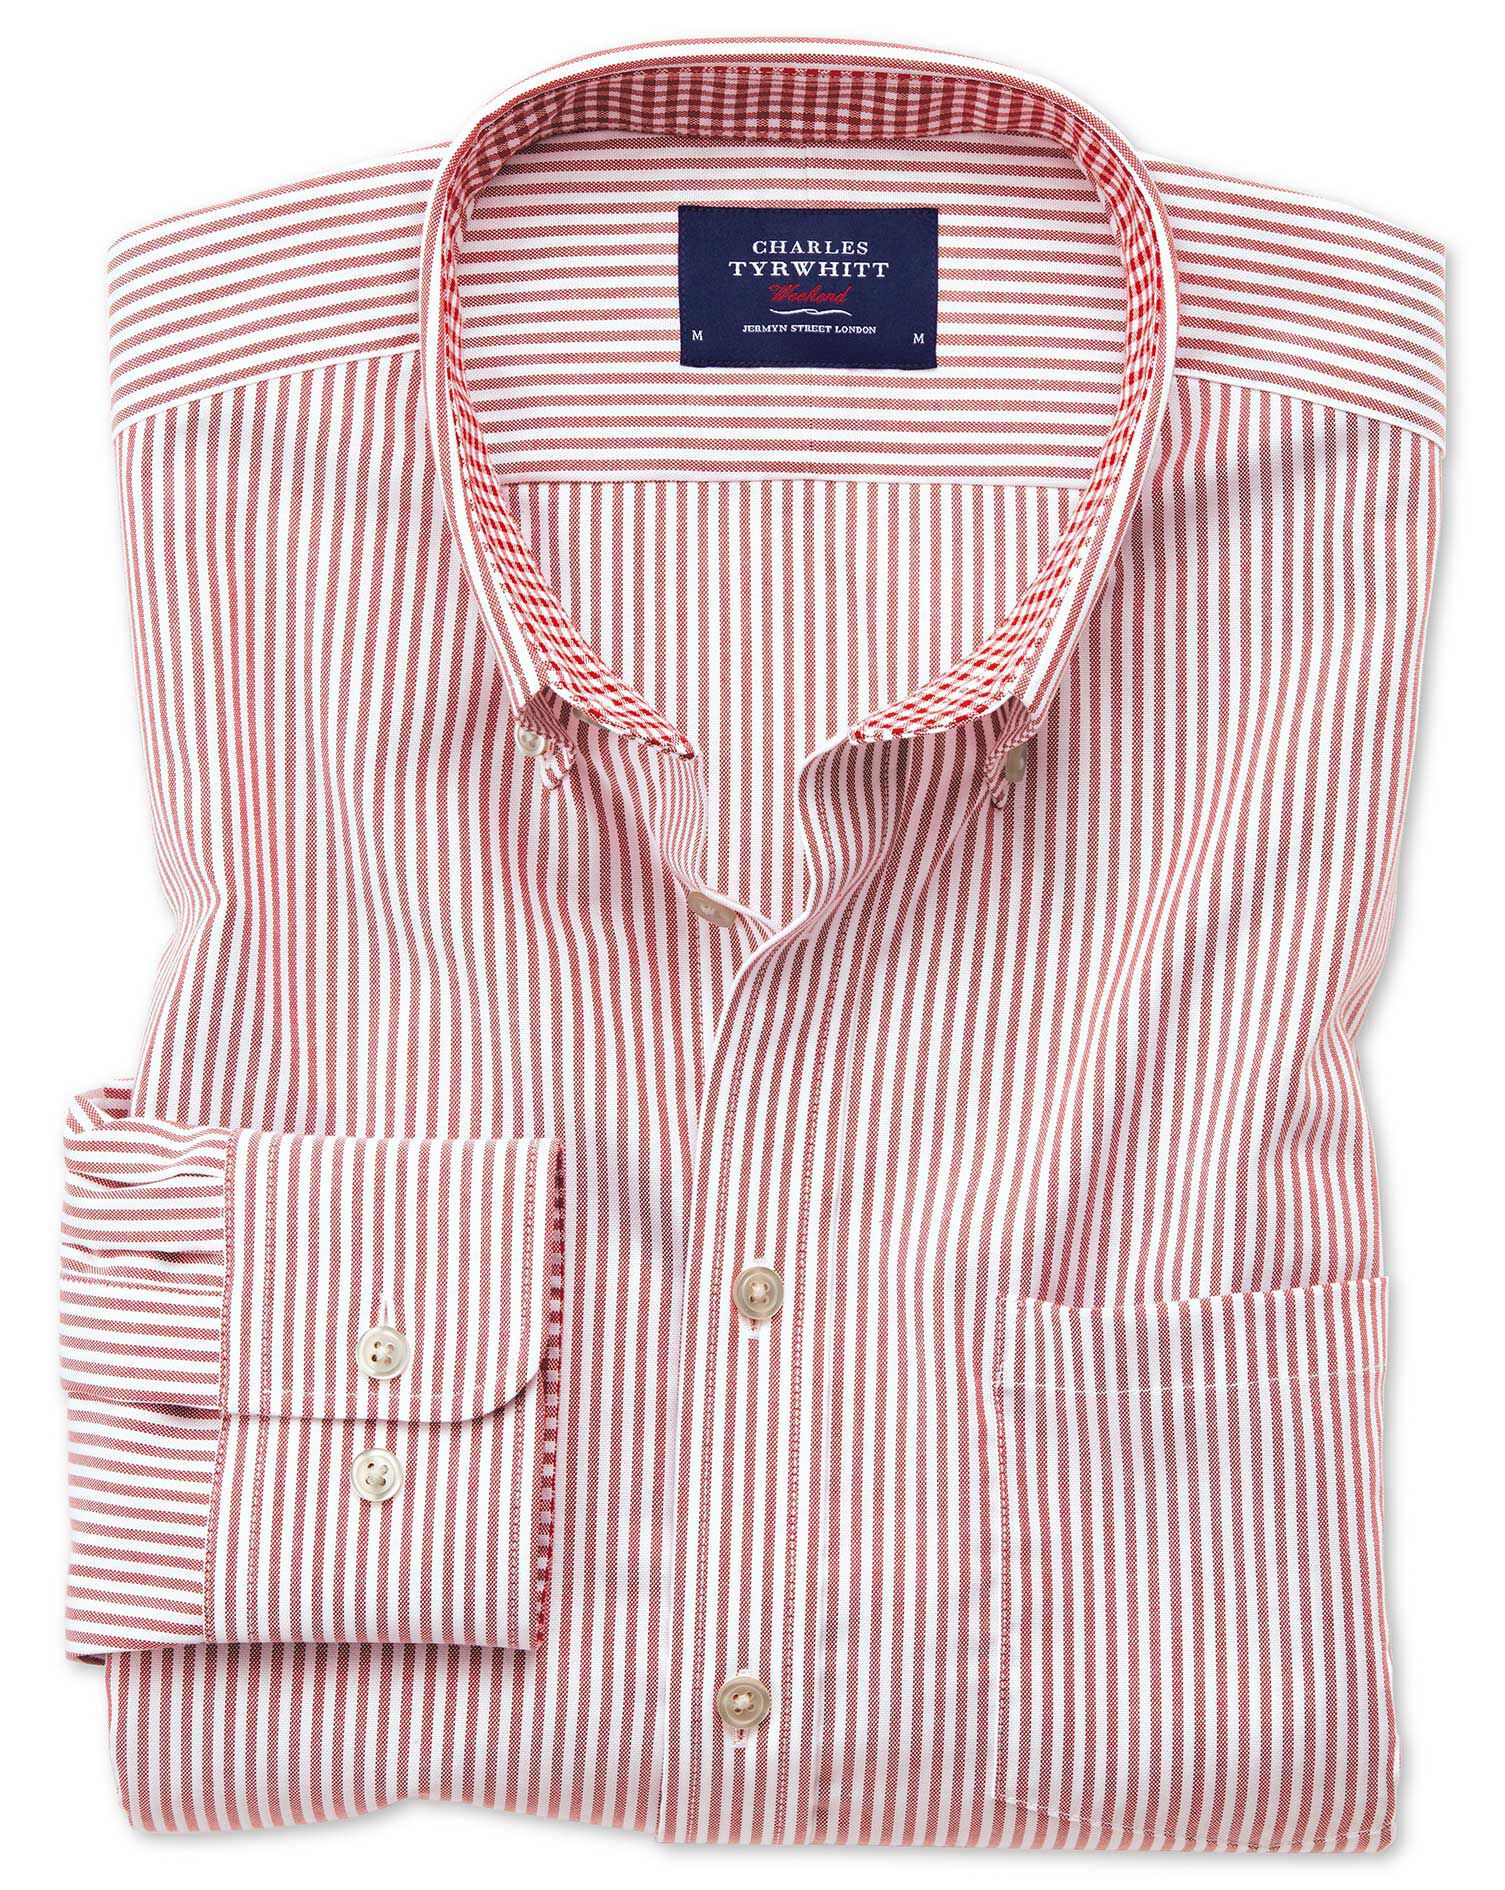 Slim Fit Button-Down Non-Iron Oxford Bengal Stripe Rust Cotton Shirt Single Cuff Size Large by Charl